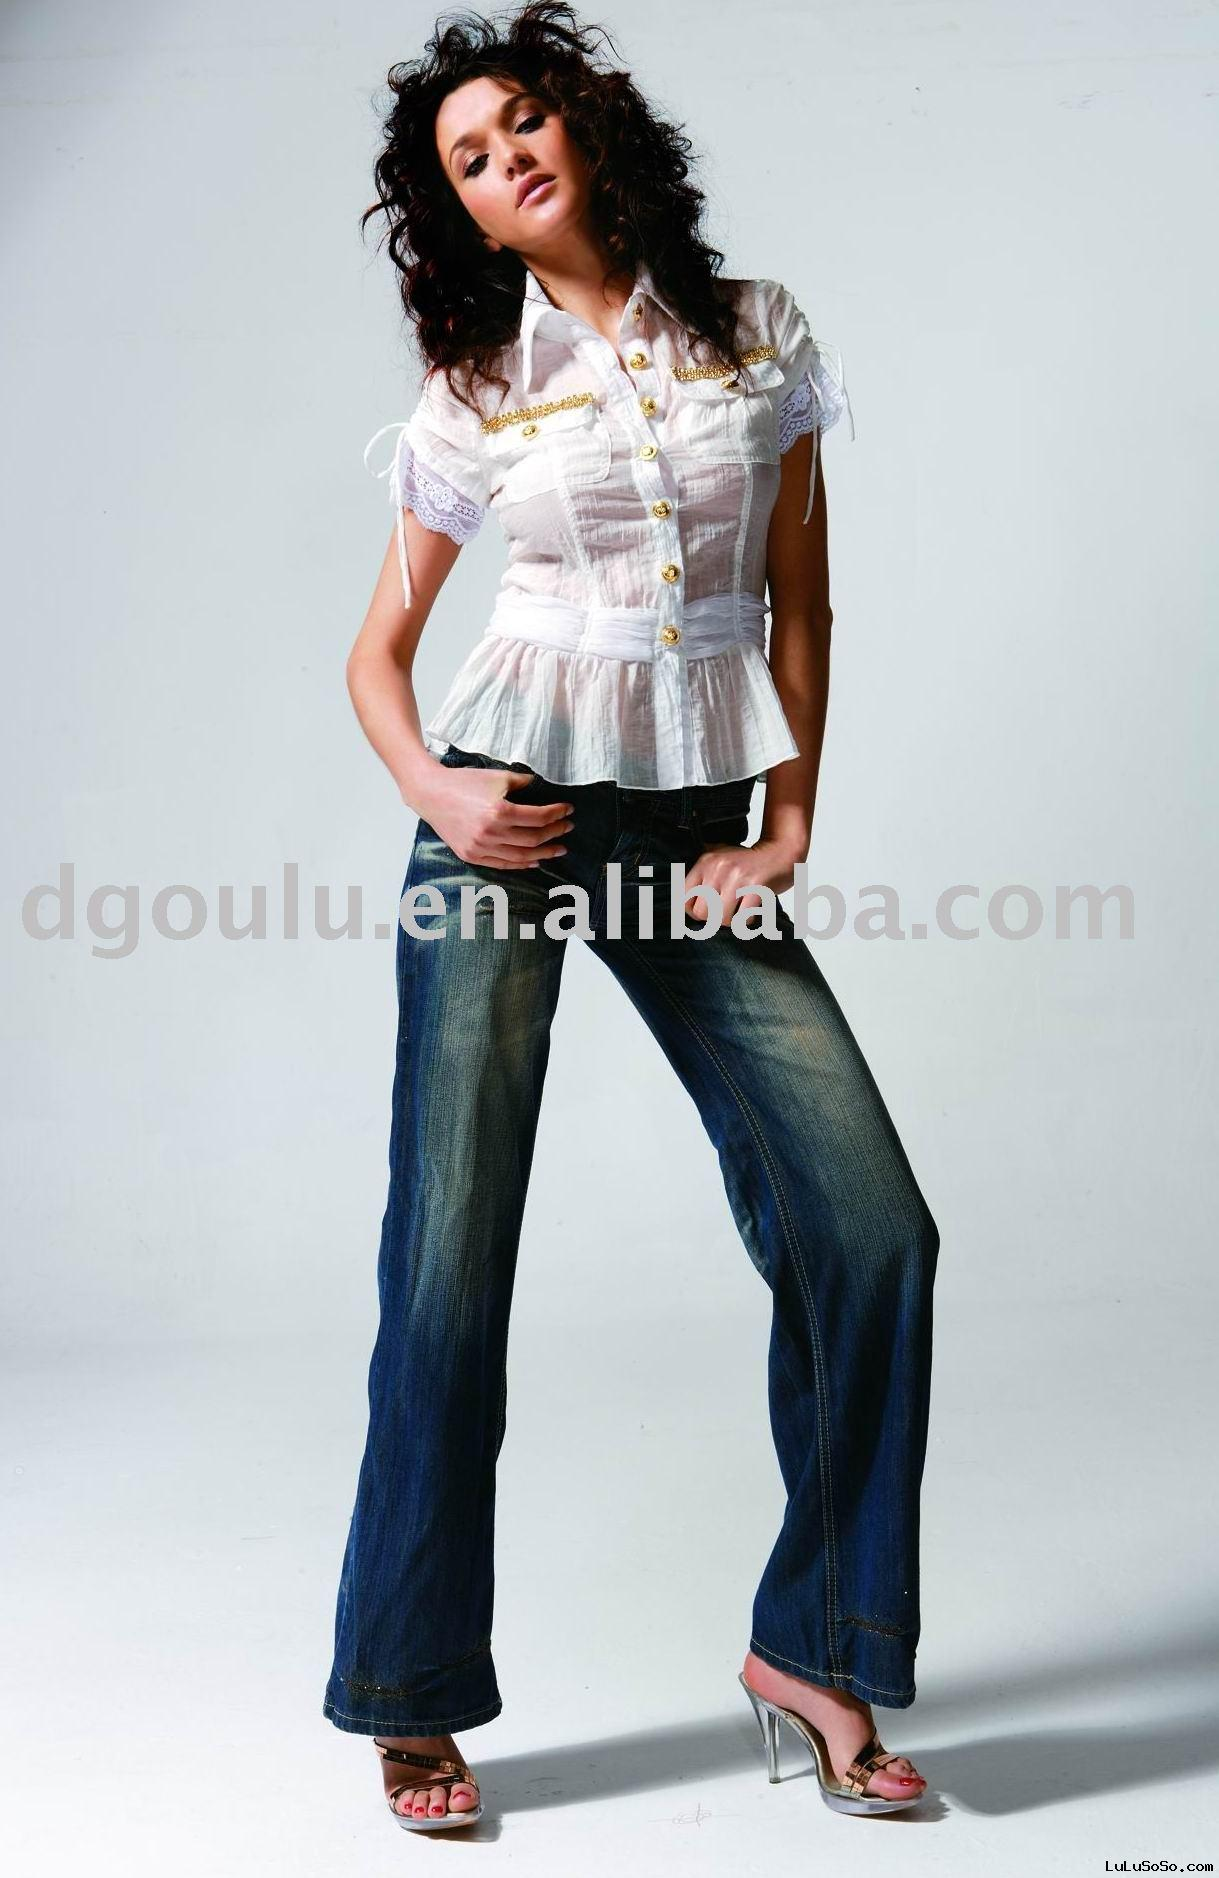 2009 Fashion ladies' blouse, ladies' garment, women clothing